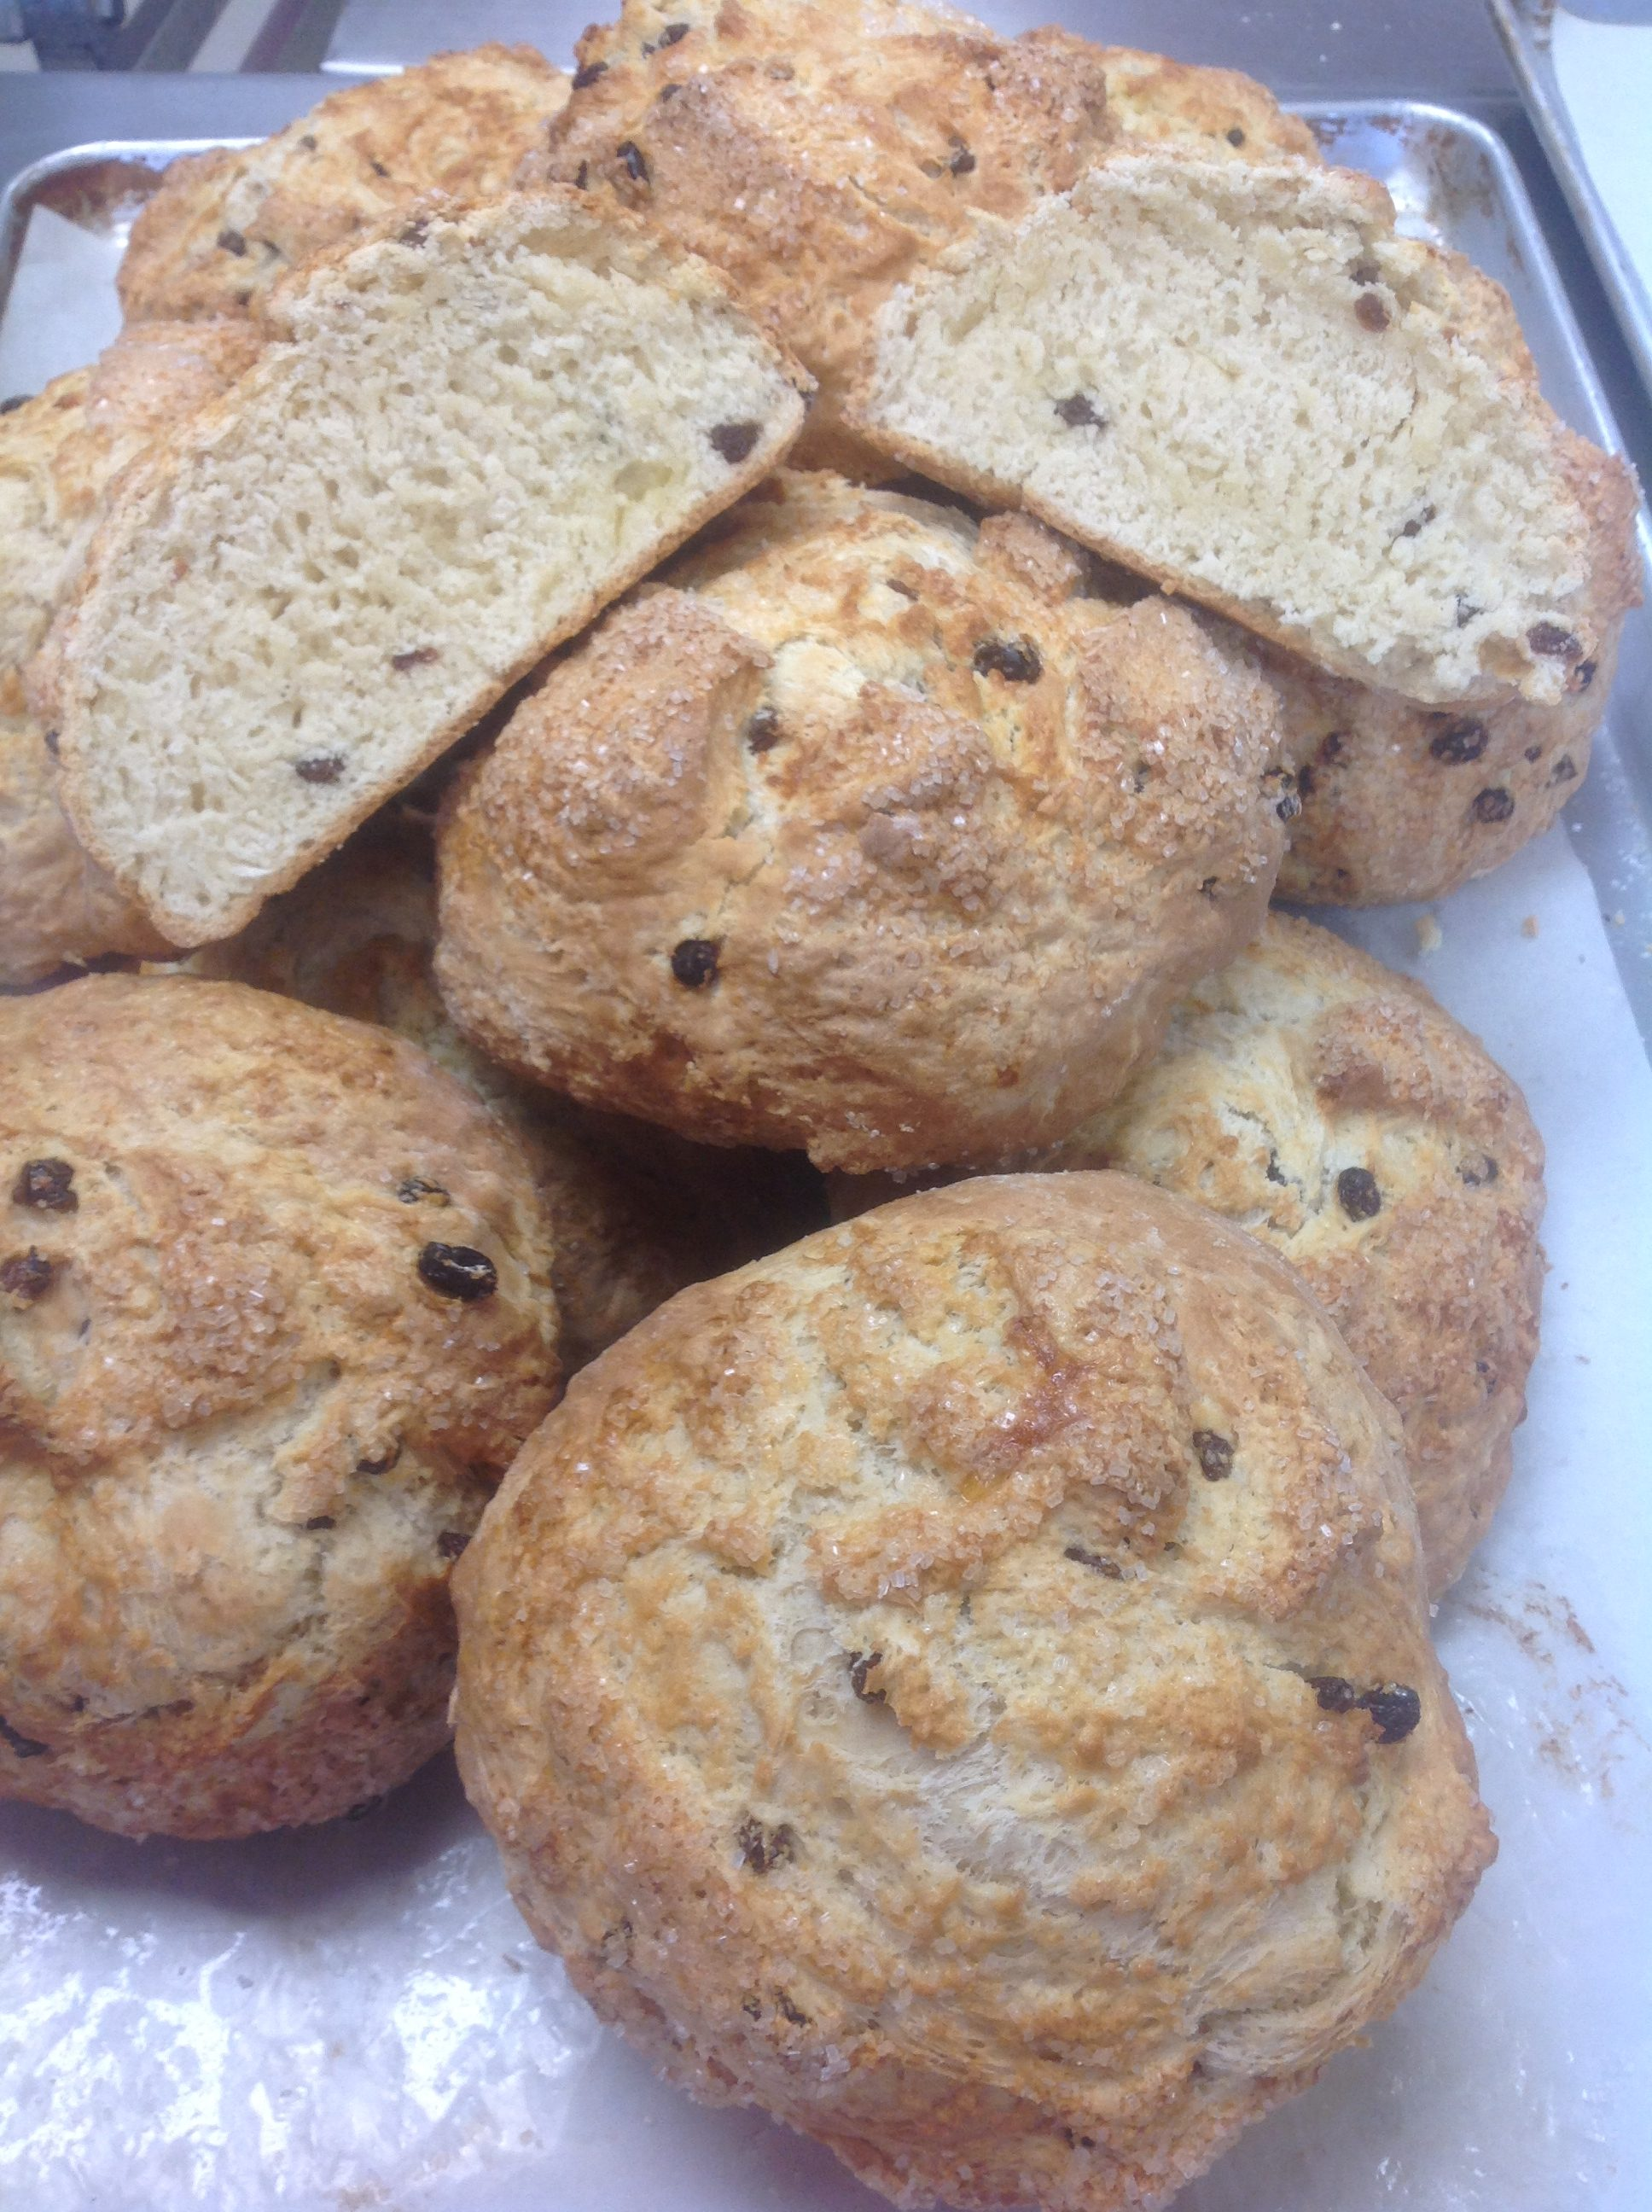 Irish Soda Bread at Dolce and Biscotti Italian Bakery